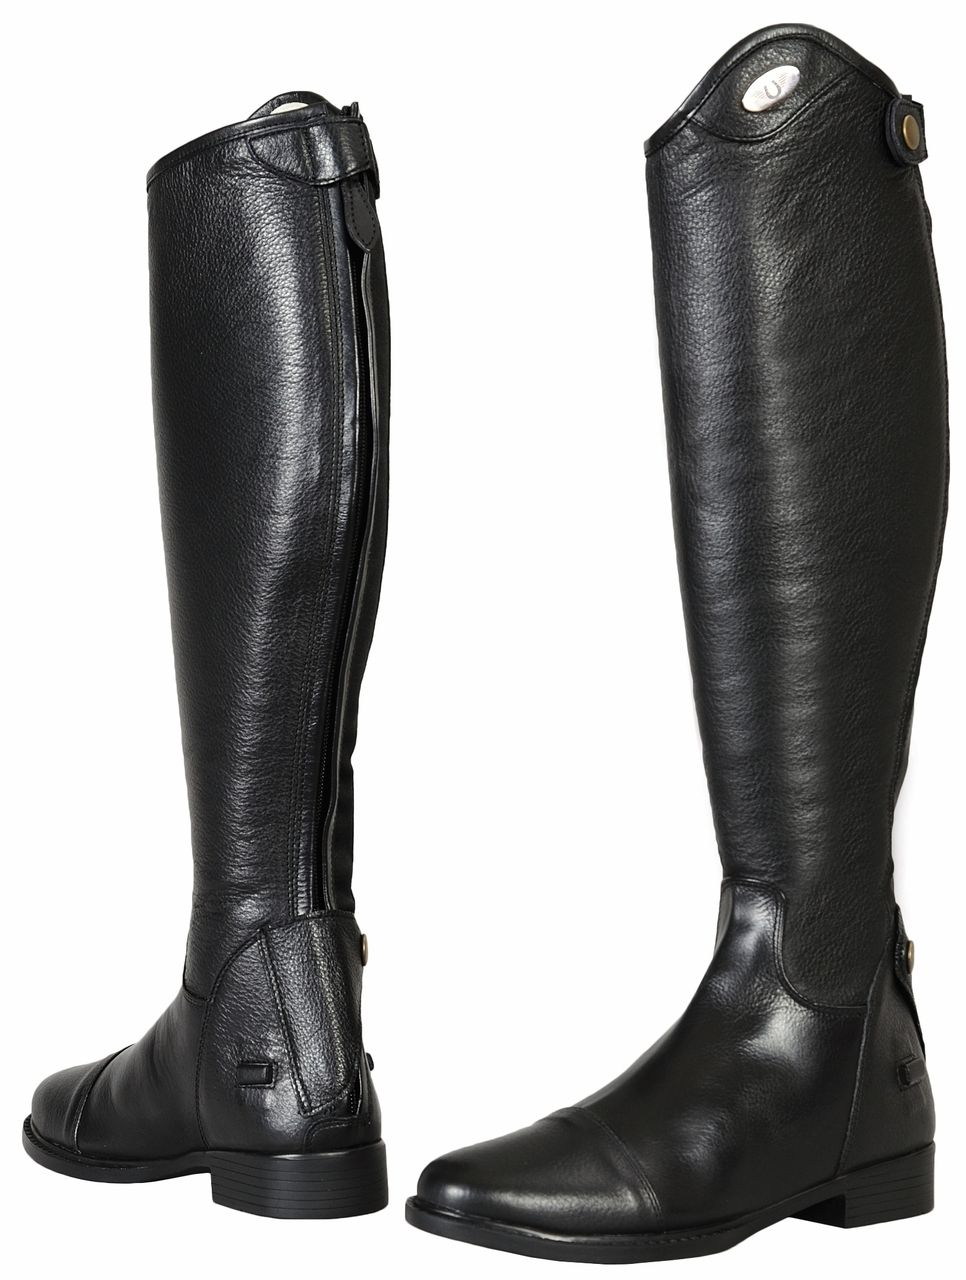 Tuffrider belmont dress boots dresses boots and dress boots